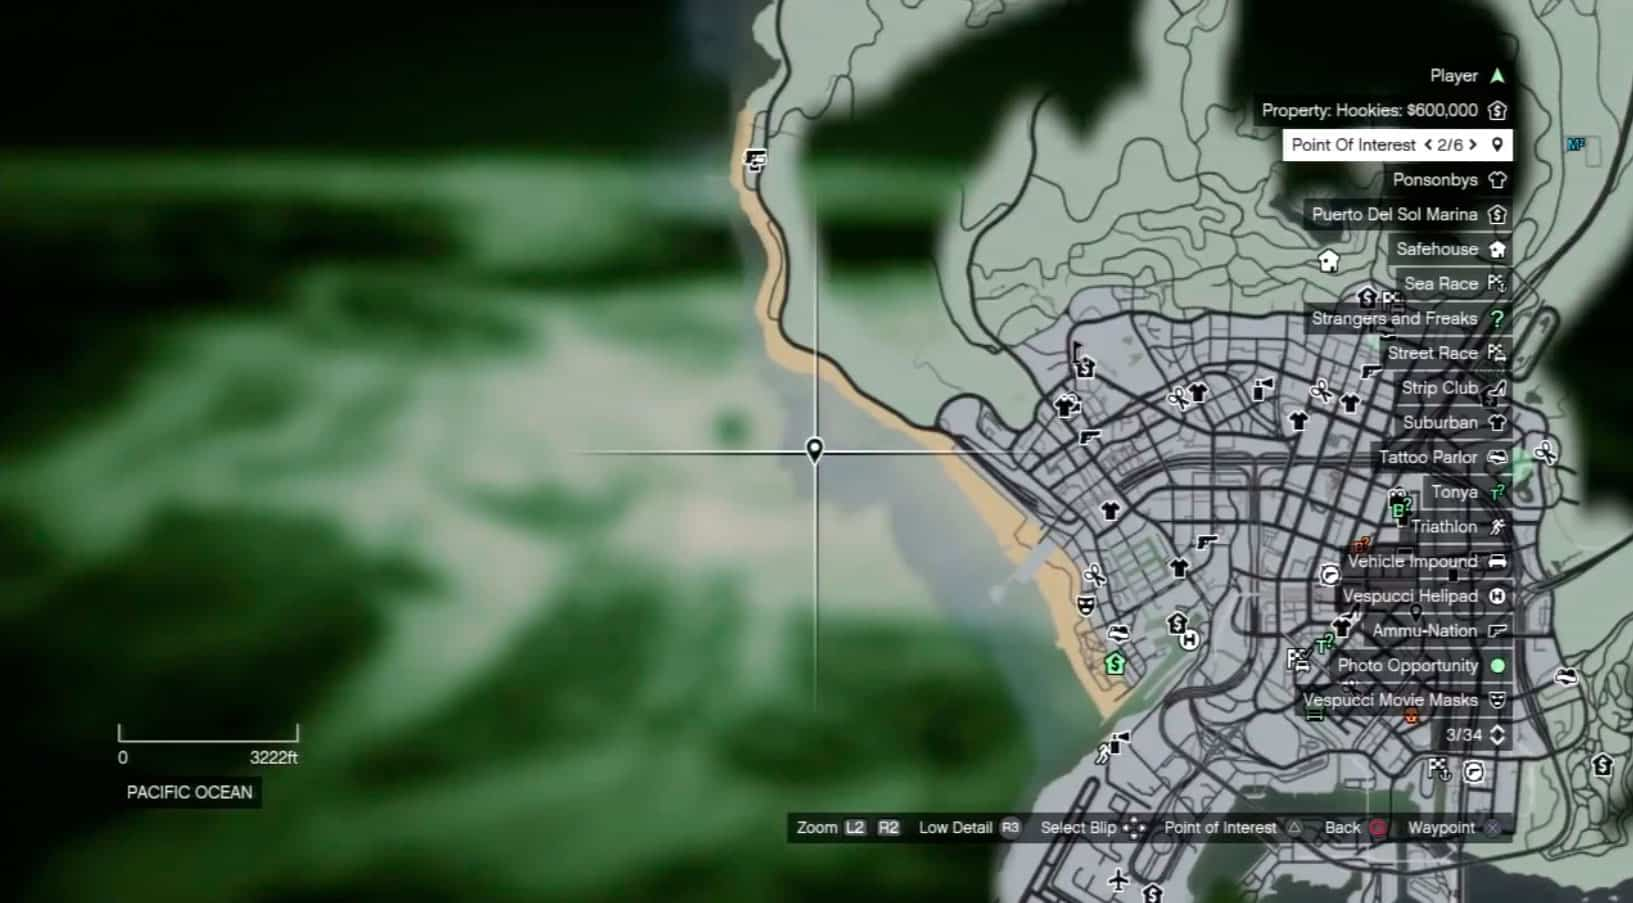 Money Hints And Tips For Grand Theft Auto 5 Gta 5 Cheats